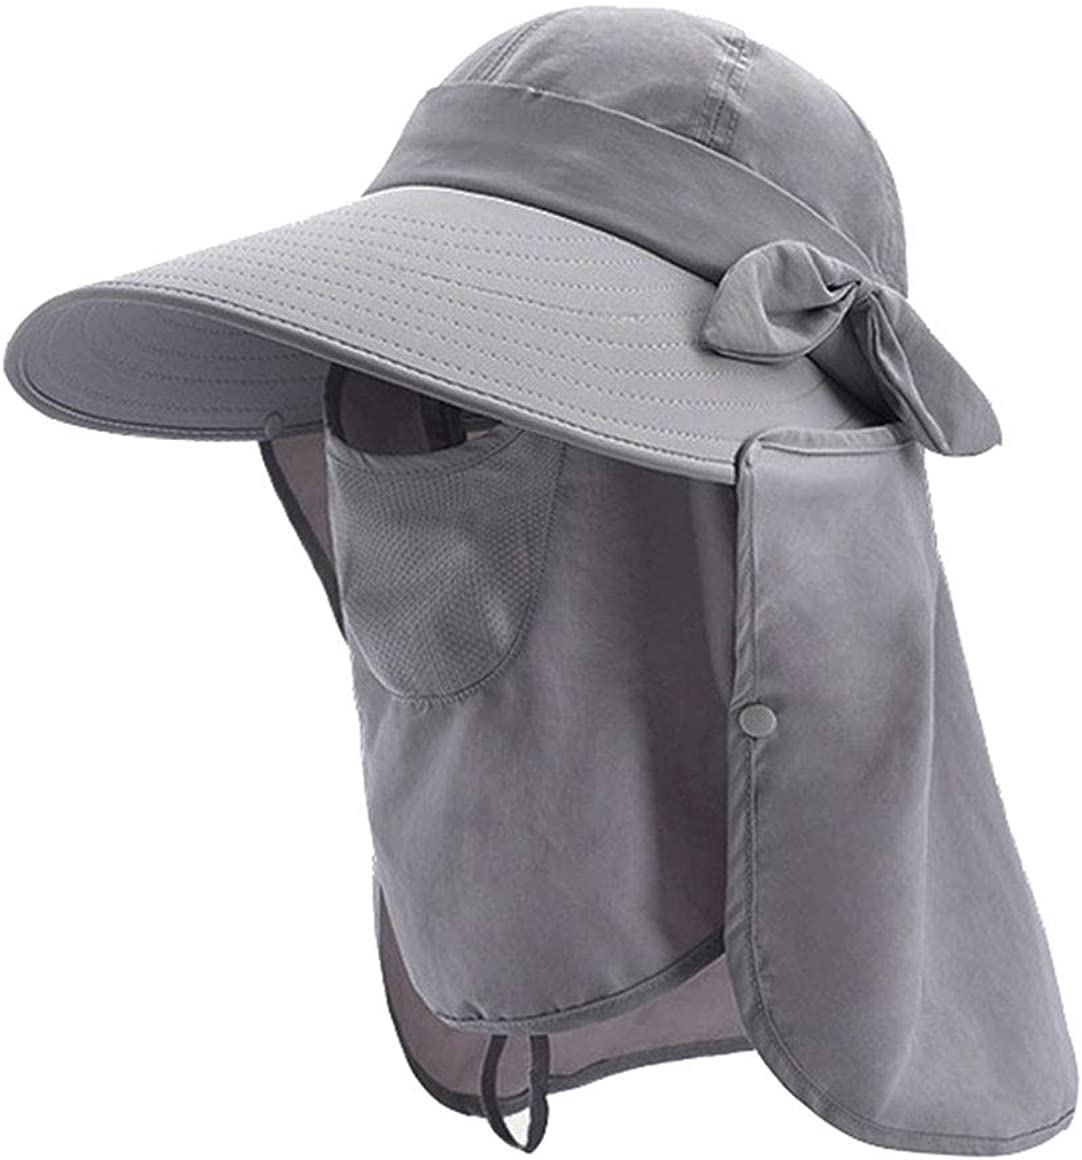 Women Removable Sun-Visor-Hats Quick-Dry Fishing - Hat Face Mask Protection